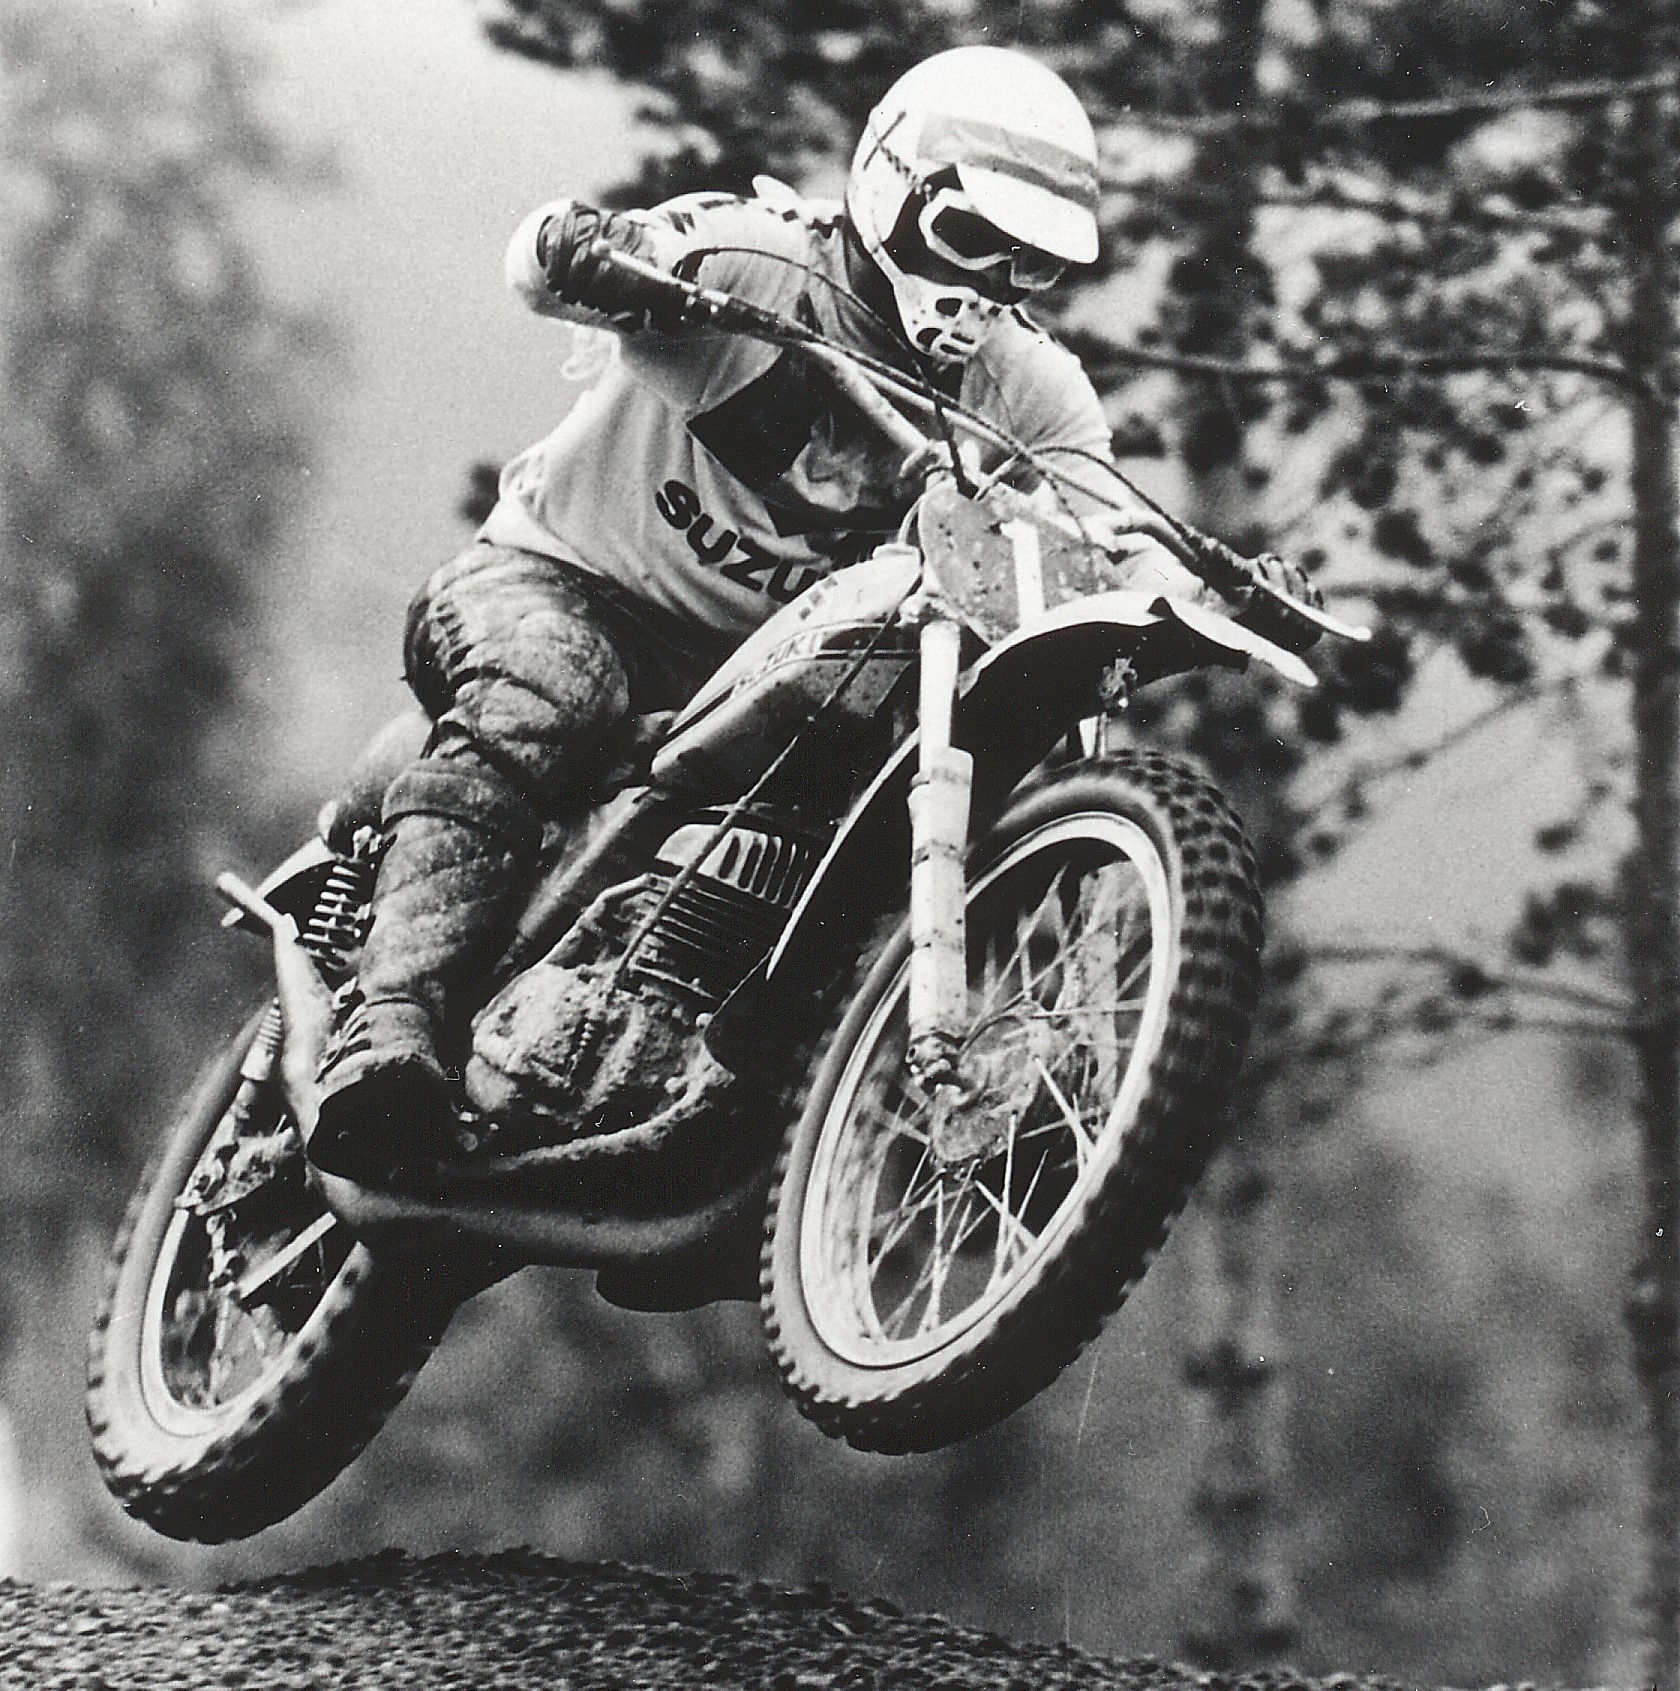 Joël Robert (1). Photo courtesy AMA Motorcycle Hall of Fame Museum.